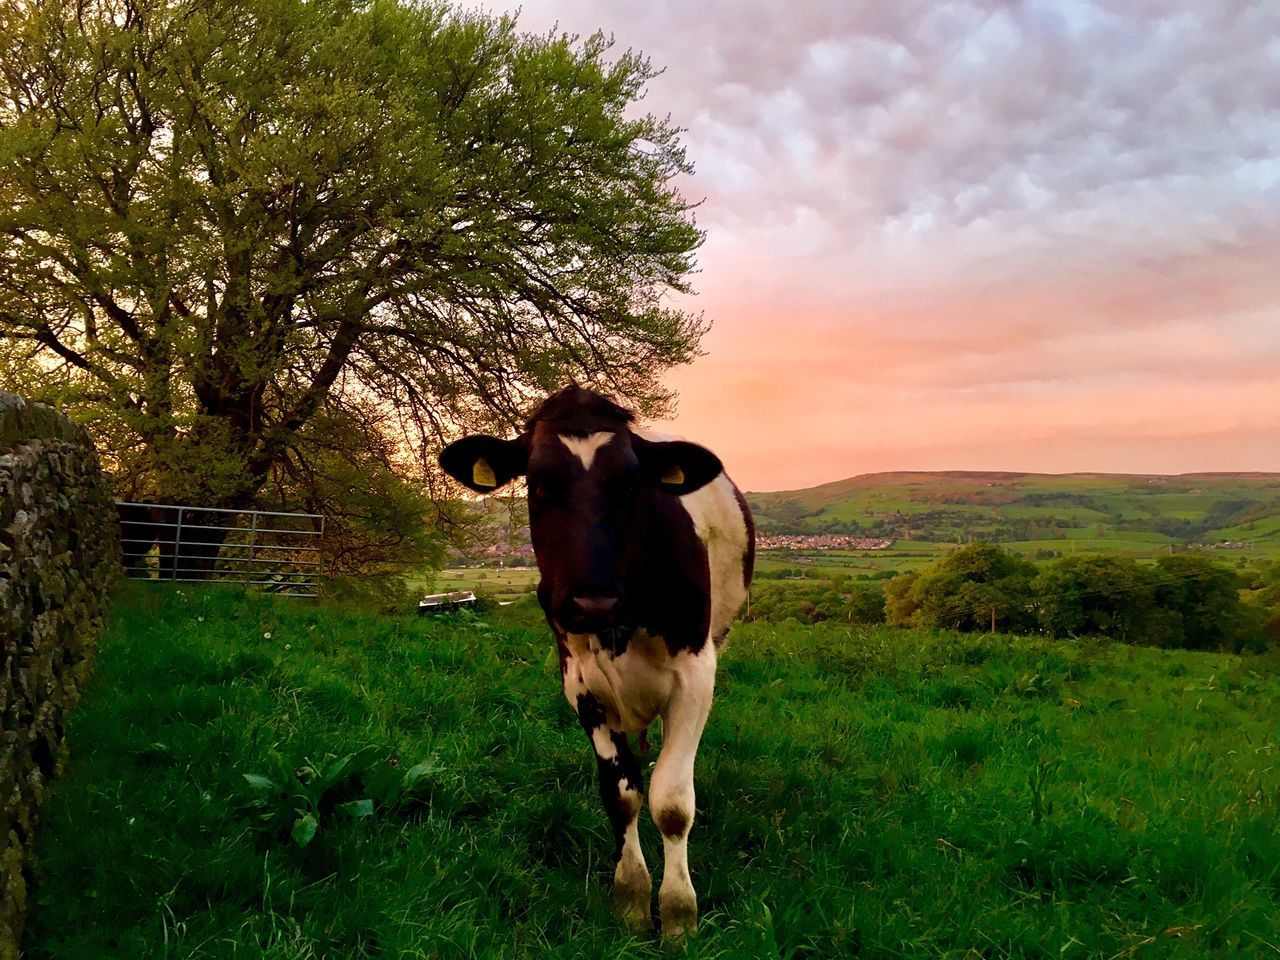 Inquisitive cow. Amazing Yorkshire view 😊 Animal Themes Domestic Animals Mammal Grass One Animal Sky Field Tree Landscape Nature Green Color Outdoors Yorkshire Dales hFull Lengthl scene] Yorkshire full lengtCloud - SkykyNo PeoplelStandingnCowoBeauty In NaturerGrowthth The Great Outdoors - 2017 EyeEm Awards